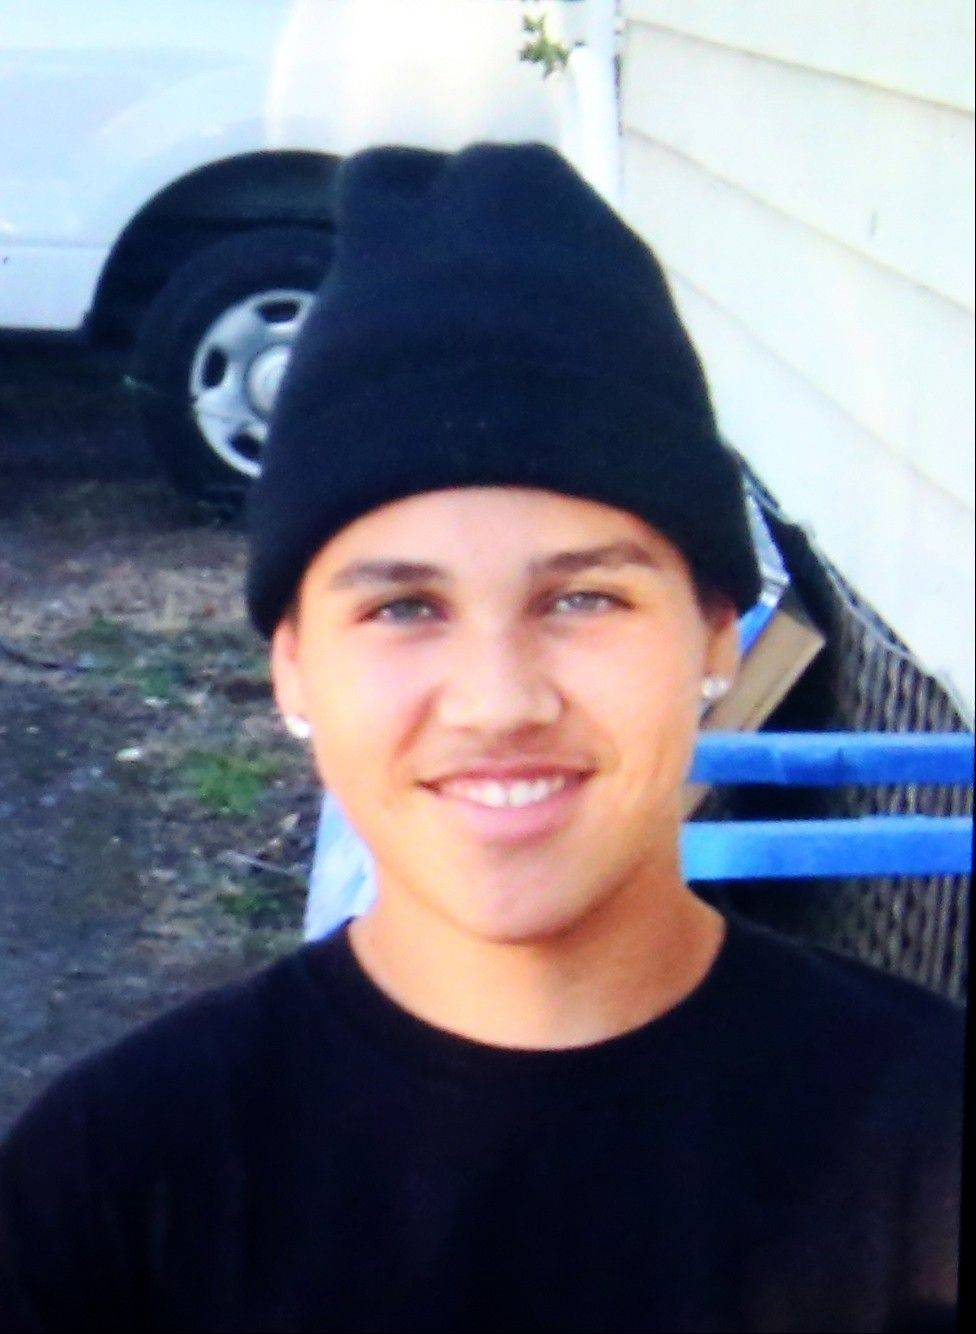 In this photo provided by the Lopez family is a picture of Andy Lopez, who was killed by sheriff's deputies in Santa Rosa, Calif. Tuesday, Oct. 22, 2013. Northern California sheriff's deputies have shot and killed the 13-year-old boy after repeatedly telling him to drop what turned out to be a replica assault rifle, sheriff's officials and family members said. Two Sonoma County deputies on patrol saw the boy walking with what appeared to be a high-powered weapon.